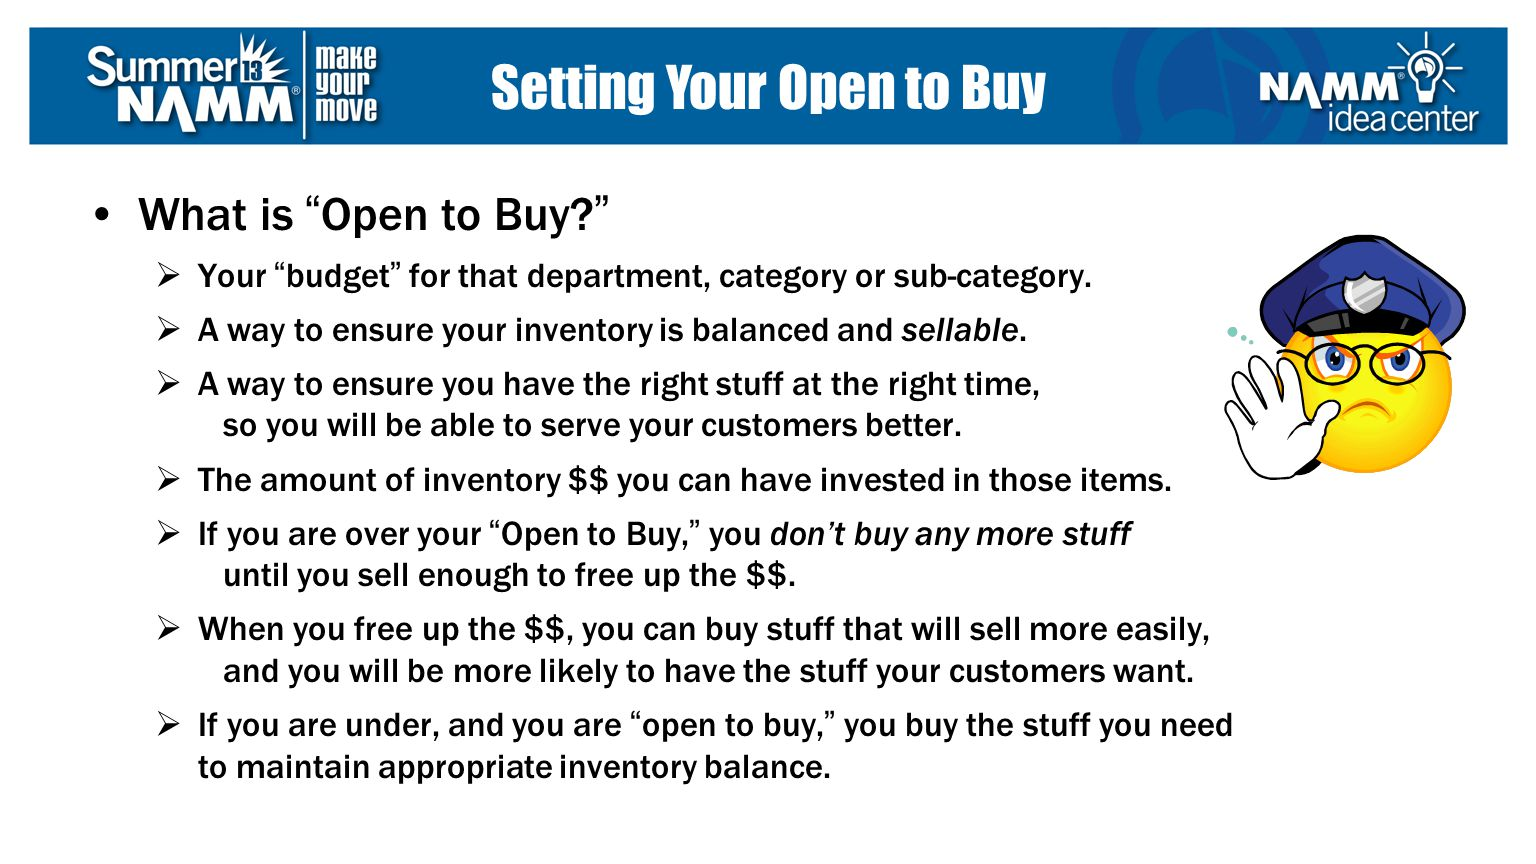 What is Open to Buy? Your budget for that department, category or sub-category. A way to ensure your inventory is balanced and sellable. A way to ensu